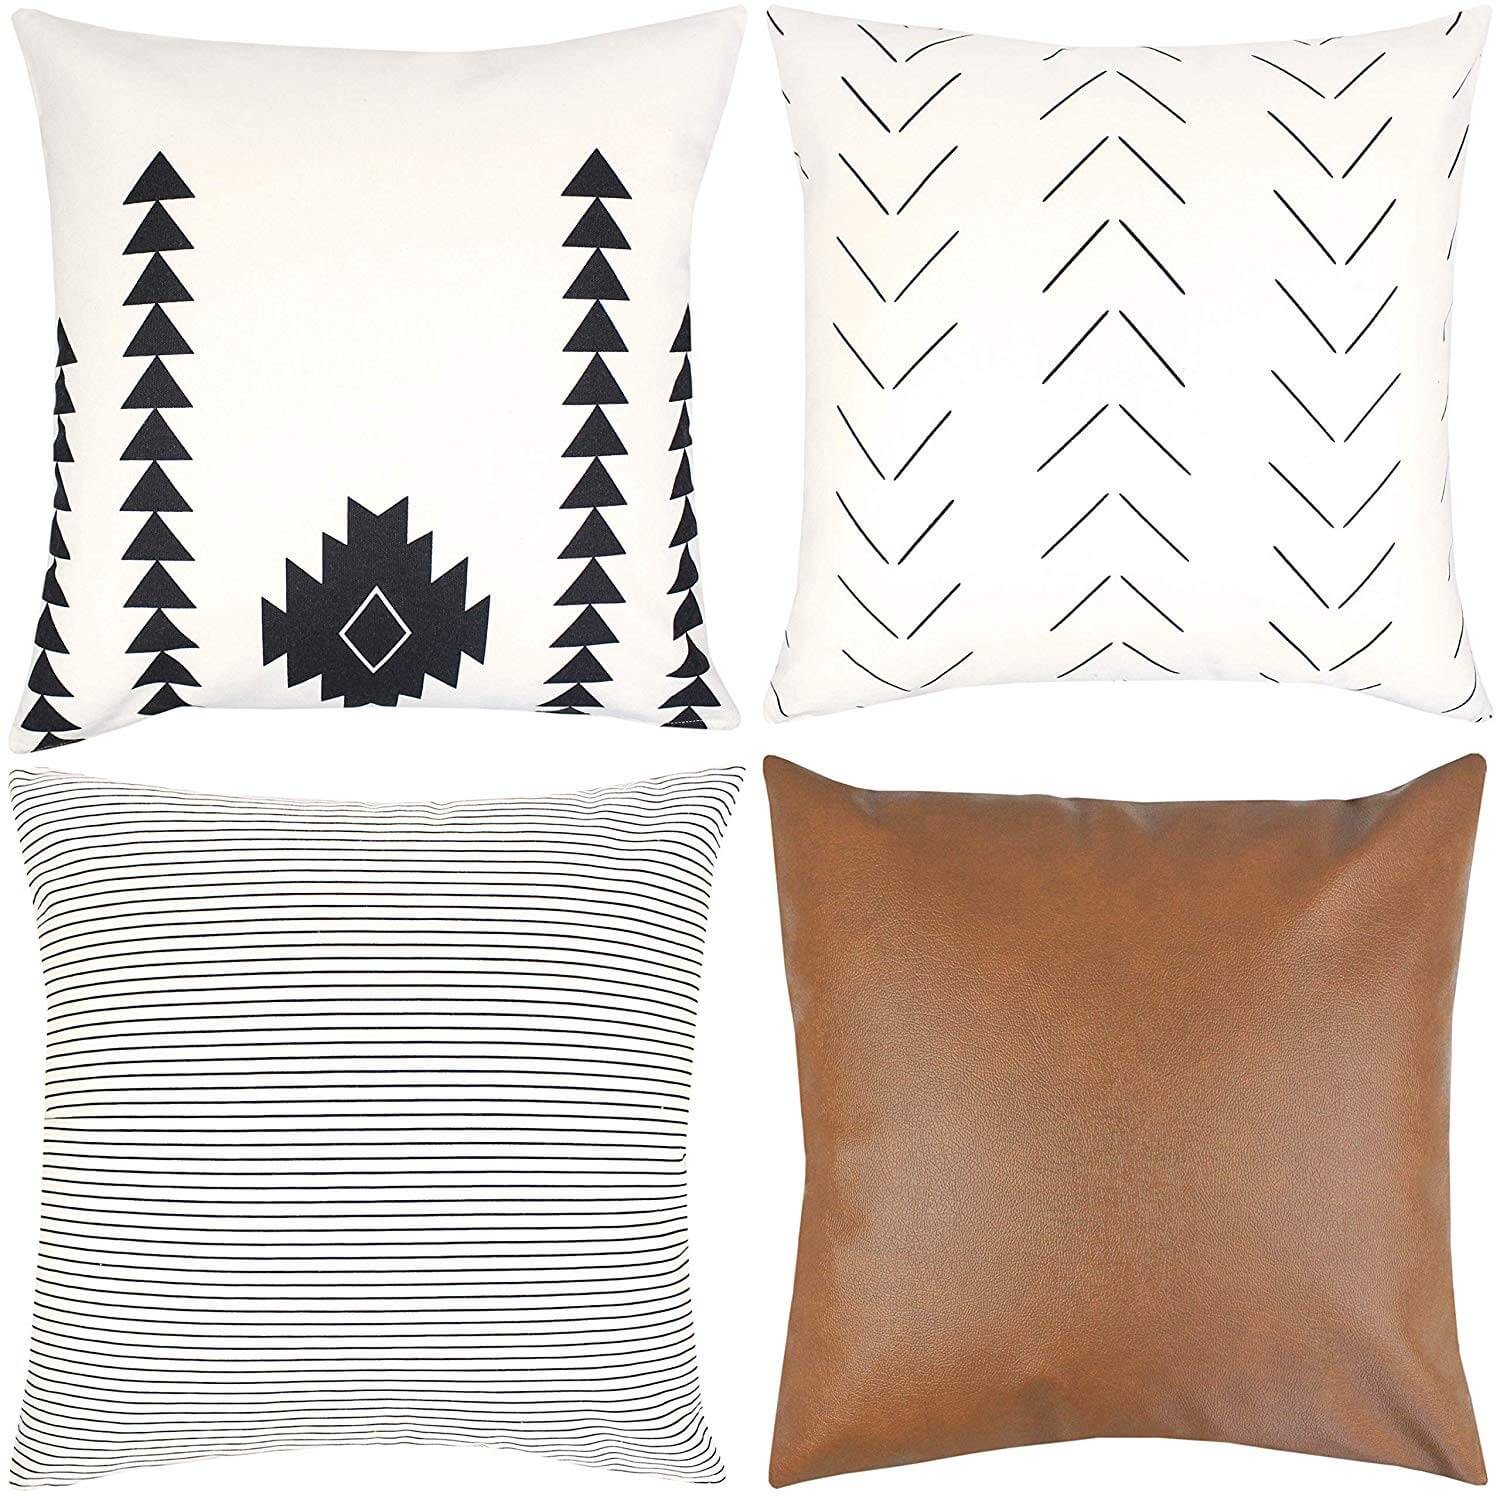 4 Pieces to Transition Your Home Into Spring   Albie Knows